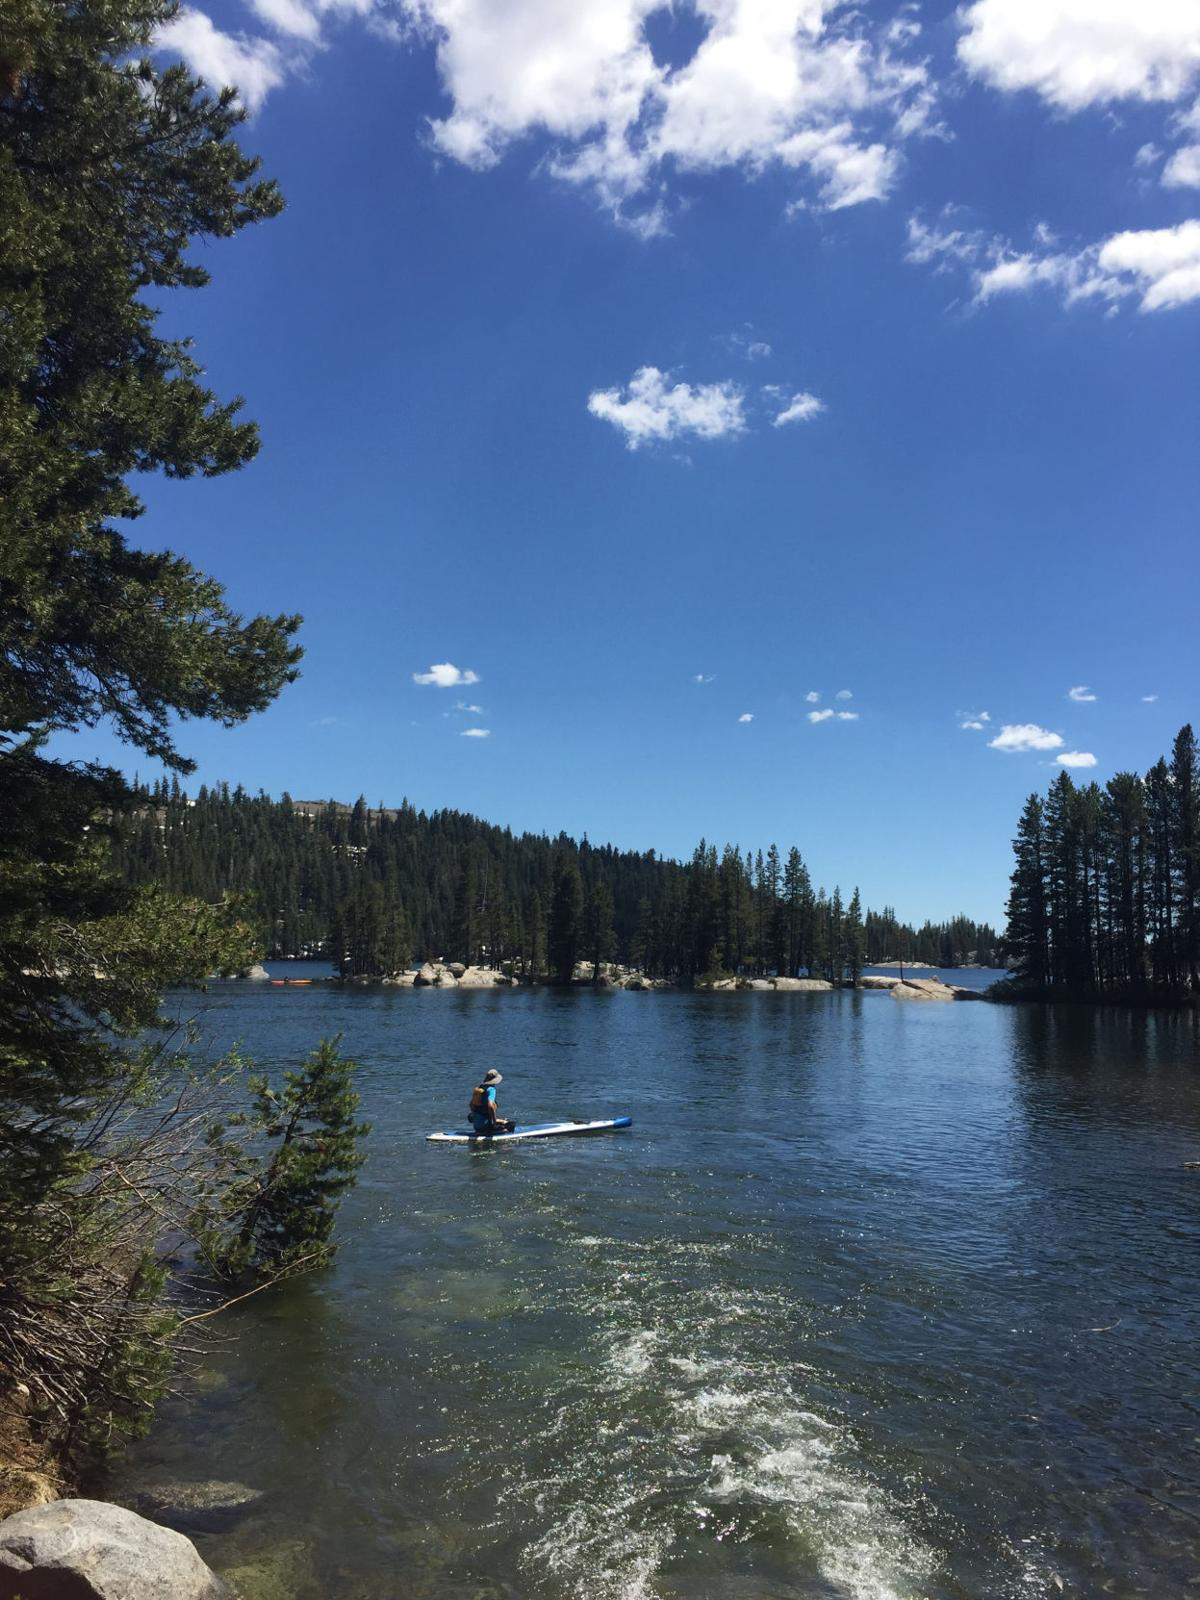 Bear Valley Ca >> Bear Valley Increases Summertime Fun Seeks To Appeal To